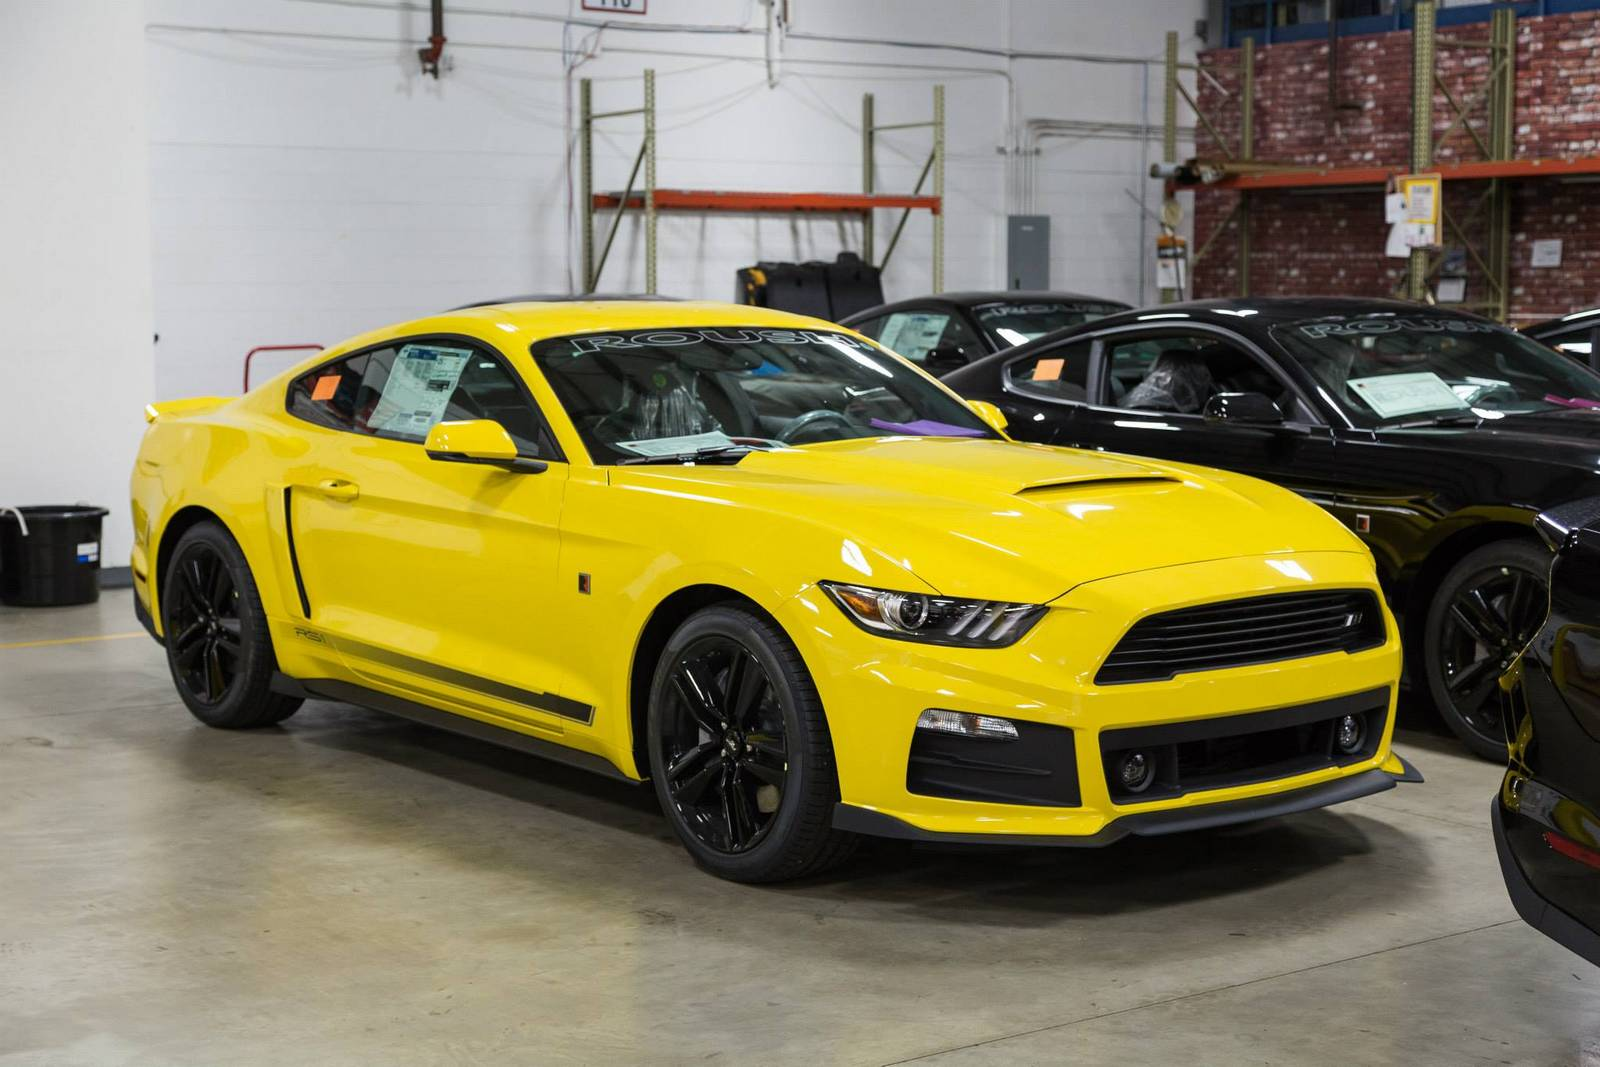 tuningcars roush reveals first batch of production ready 2015 rs mustangs. Black Bedroom Furniture Sets. Home Design Ideas